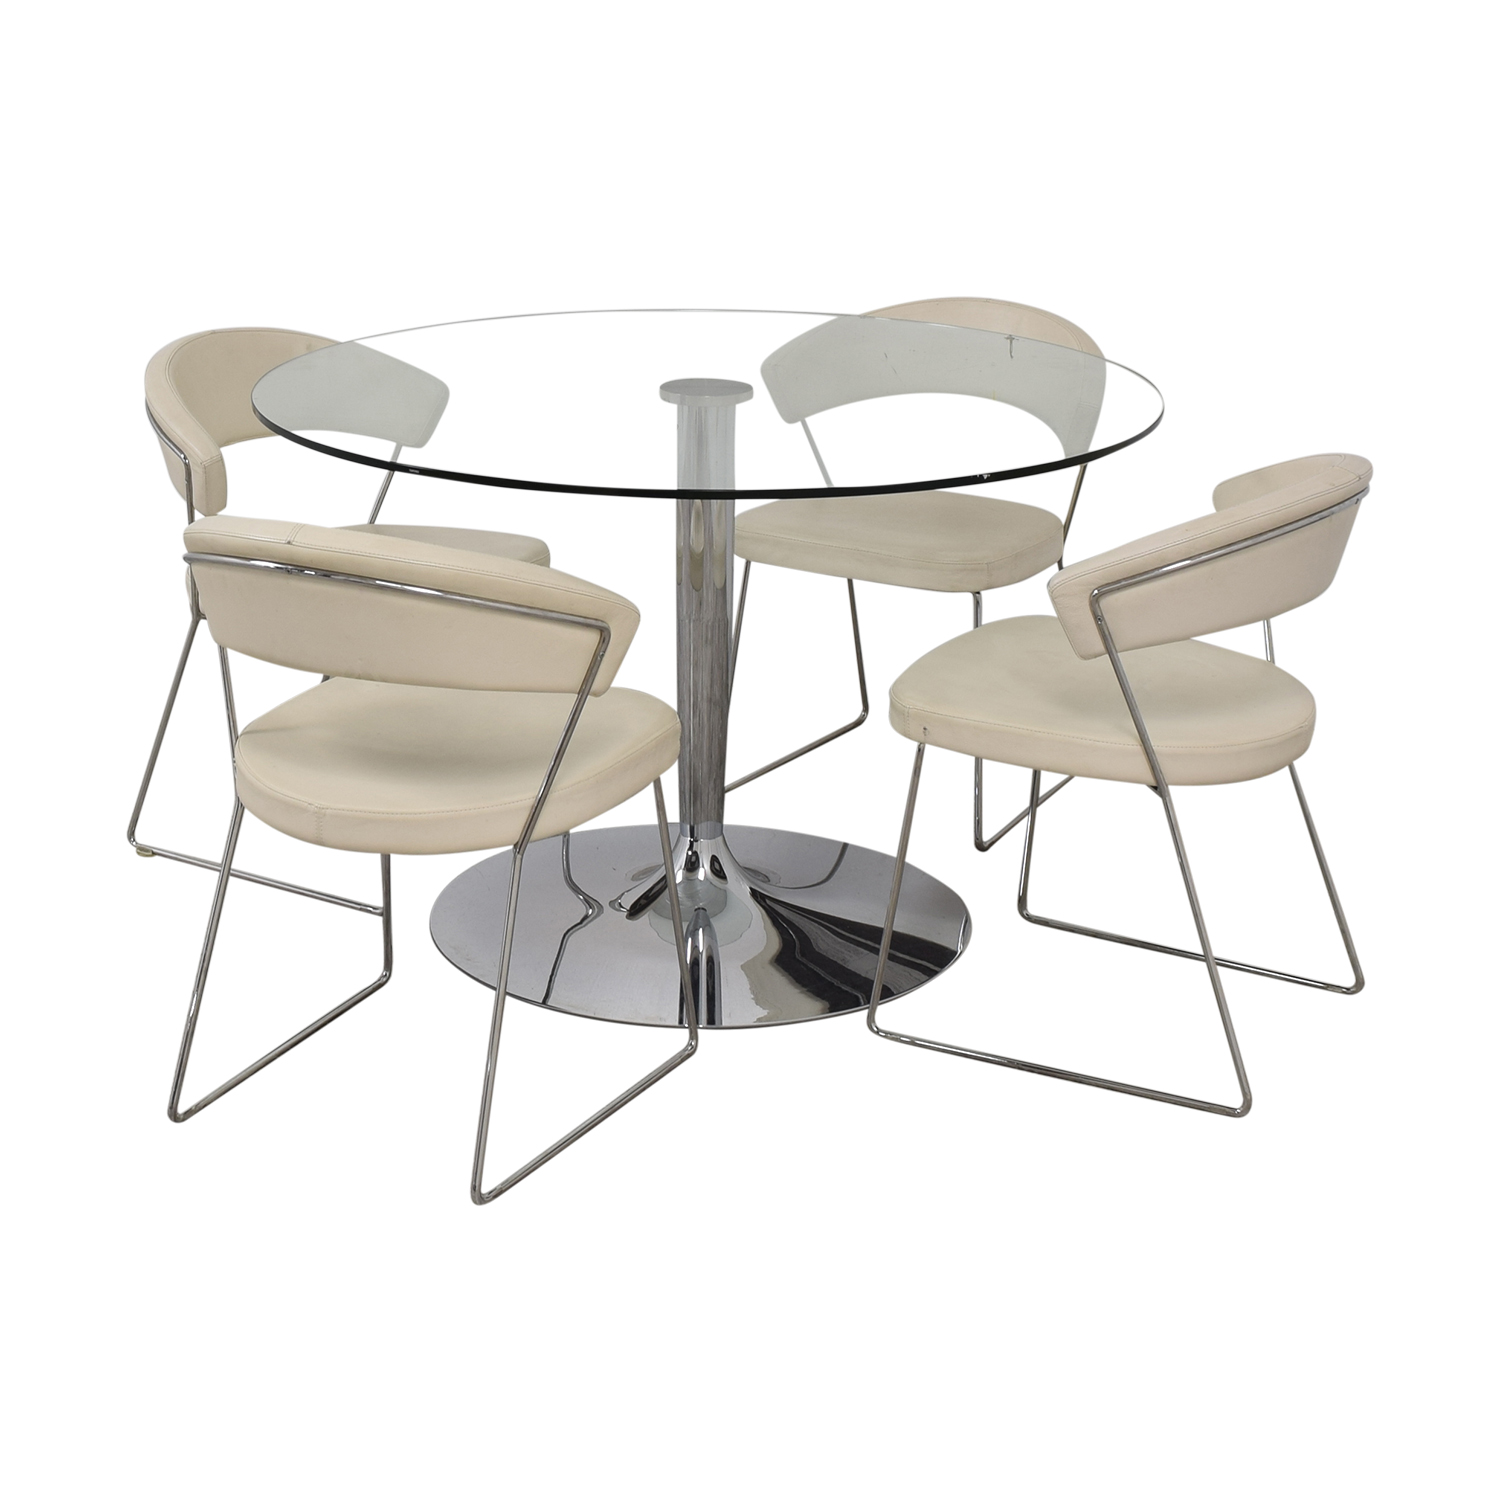 Calligaris Calligaris Planet Glass Dining Table with Calligaris New York  Chairs price